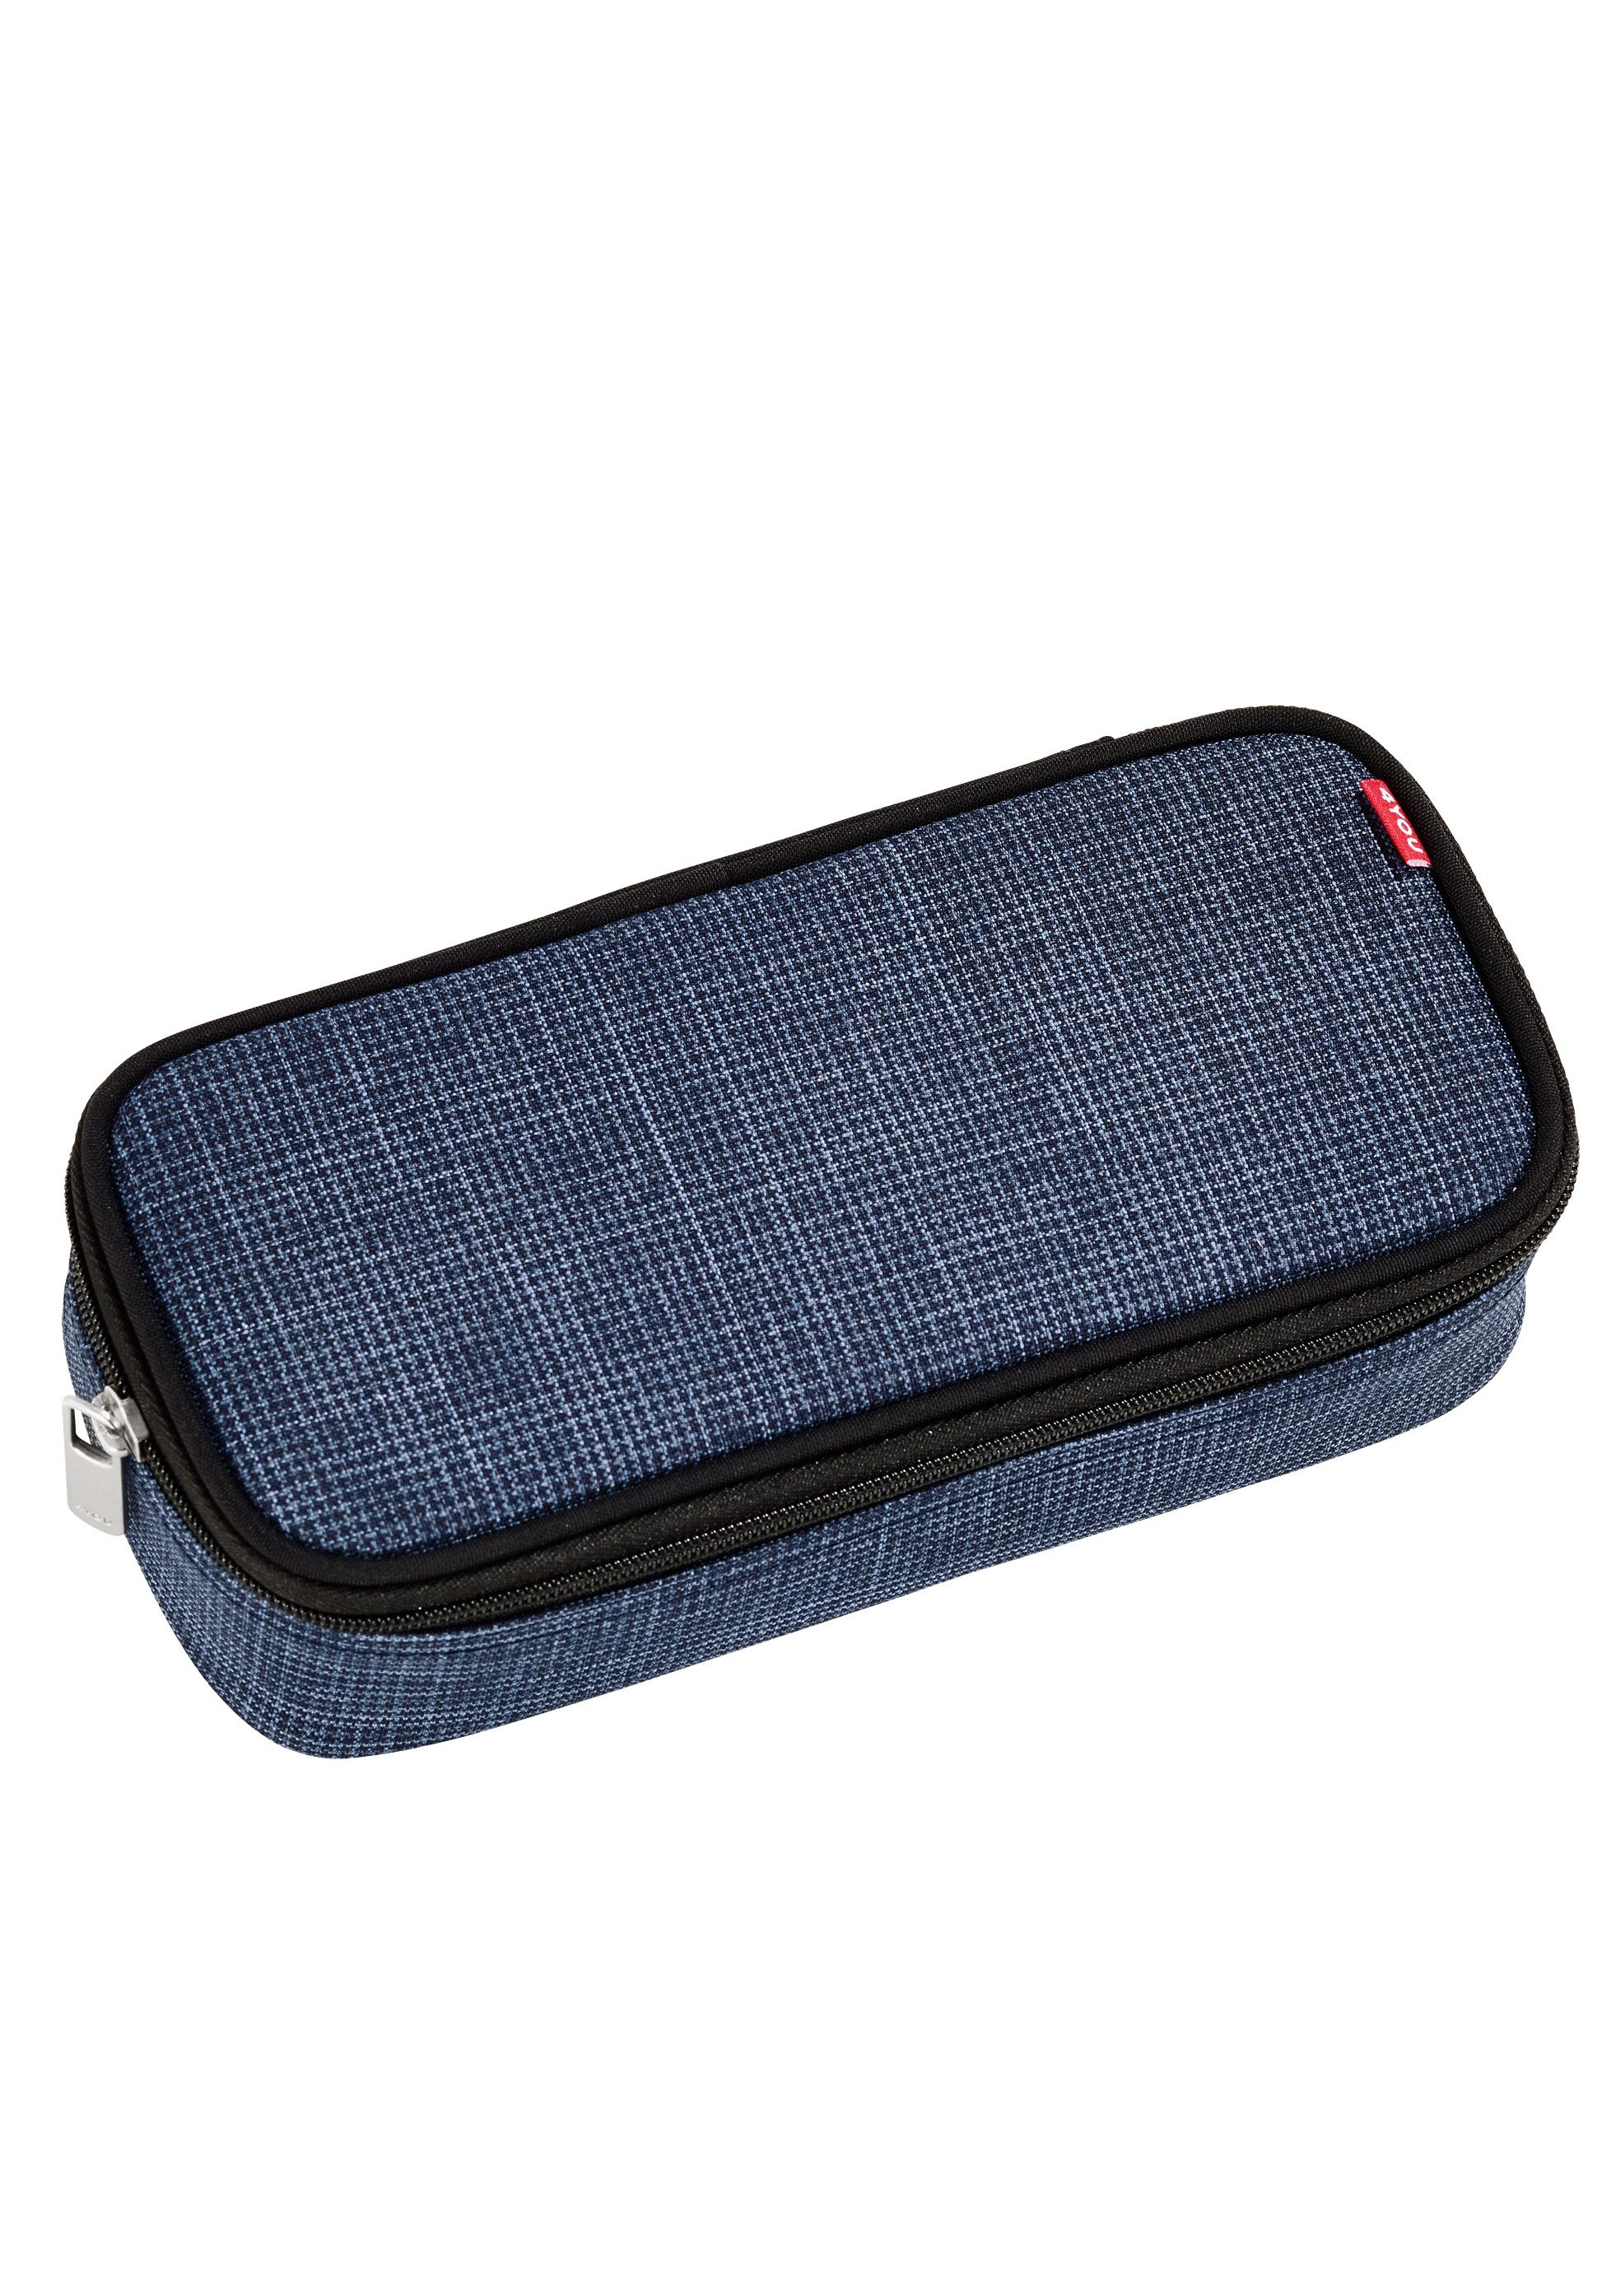 4YOU Mäppchen mit Geodreieck®, Pixel Blue, »Pencil Case«